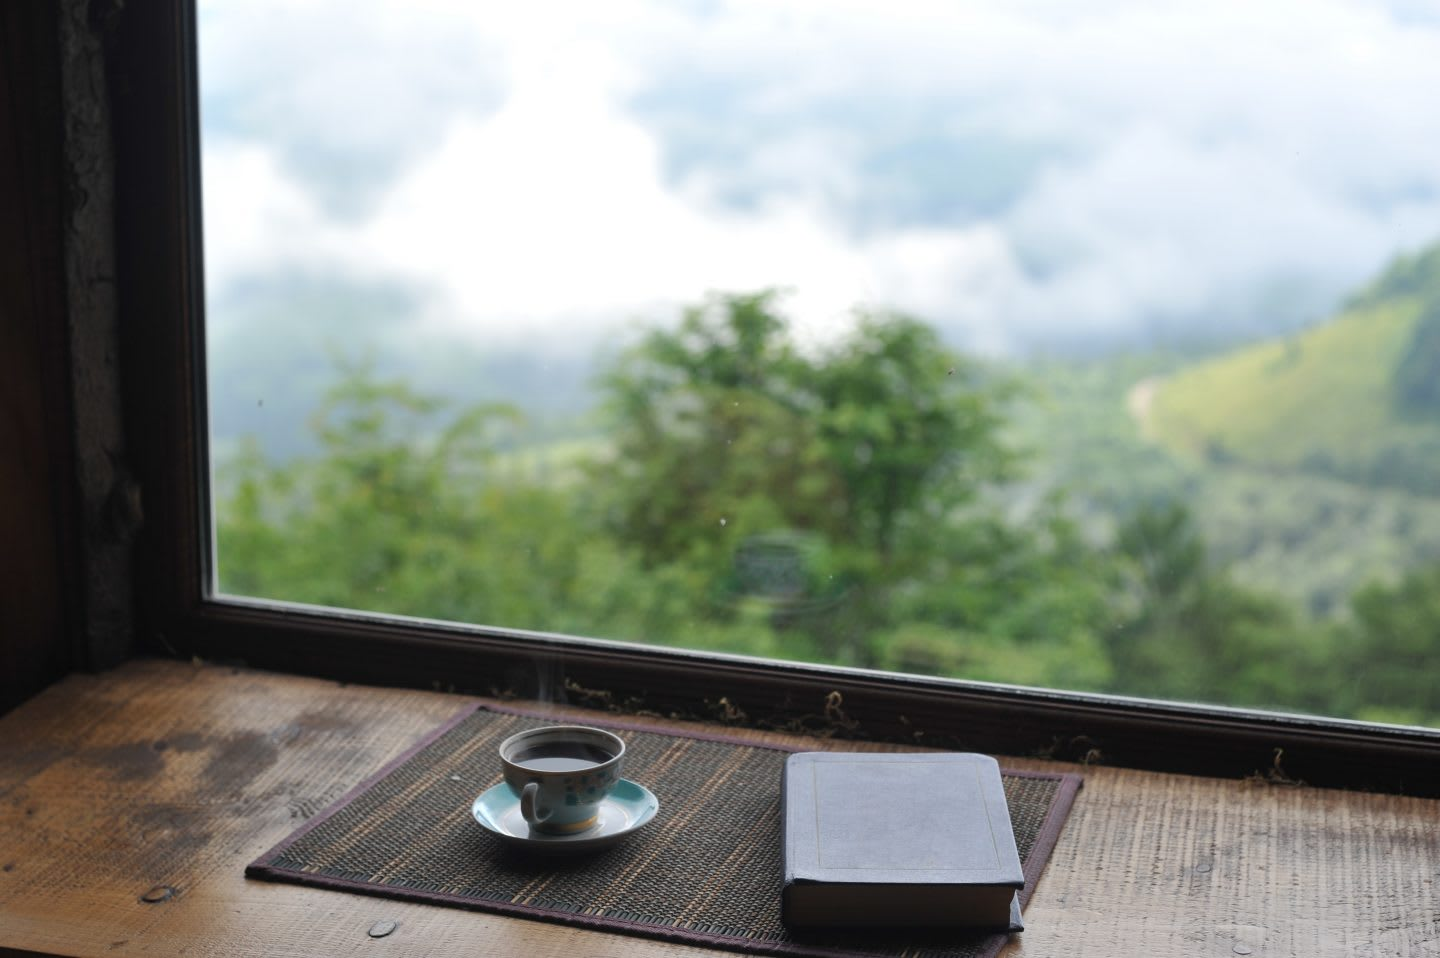 Close-up book and coffee against the beautiful view from the window. Time to let your mind wander. GamePlanA